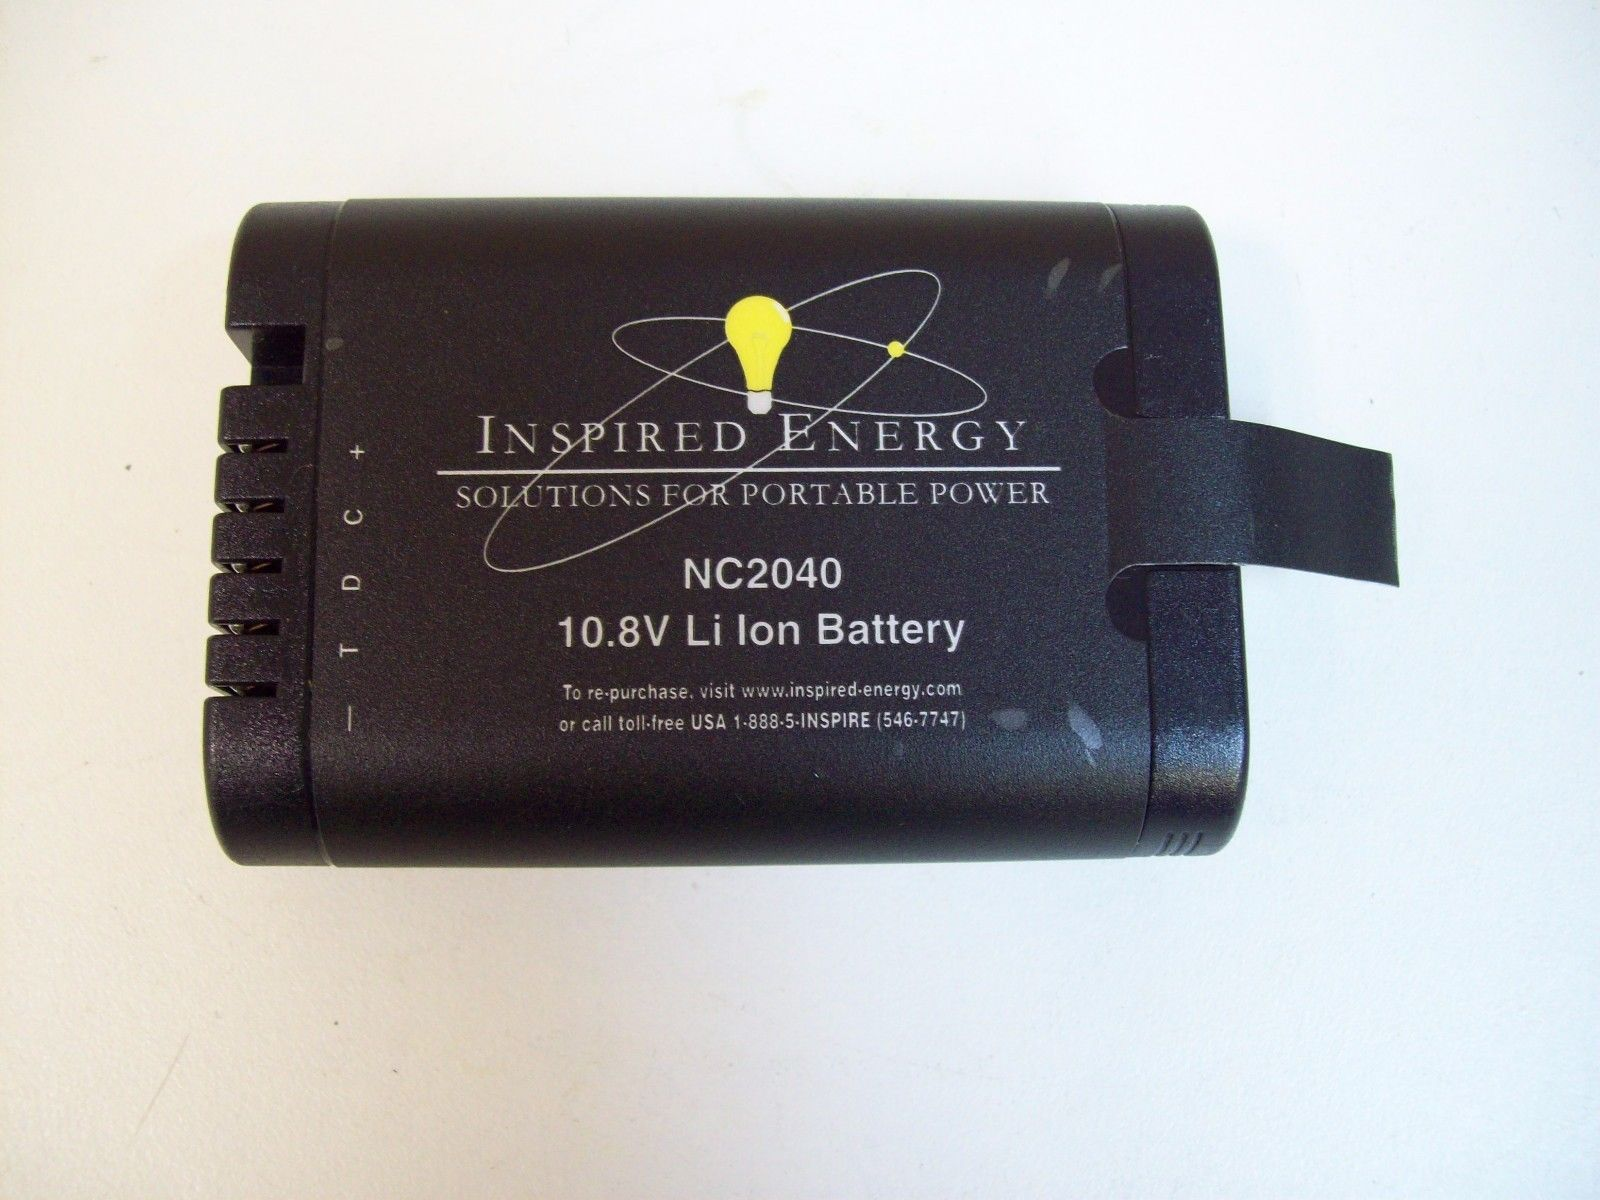 Portable Monitor For Laptop >> INSPIRED ENERGY NC2040 NC2040NO29 10.8V SOLUTIONS FOR PORTABLE POWER - Ultrabook-Battery